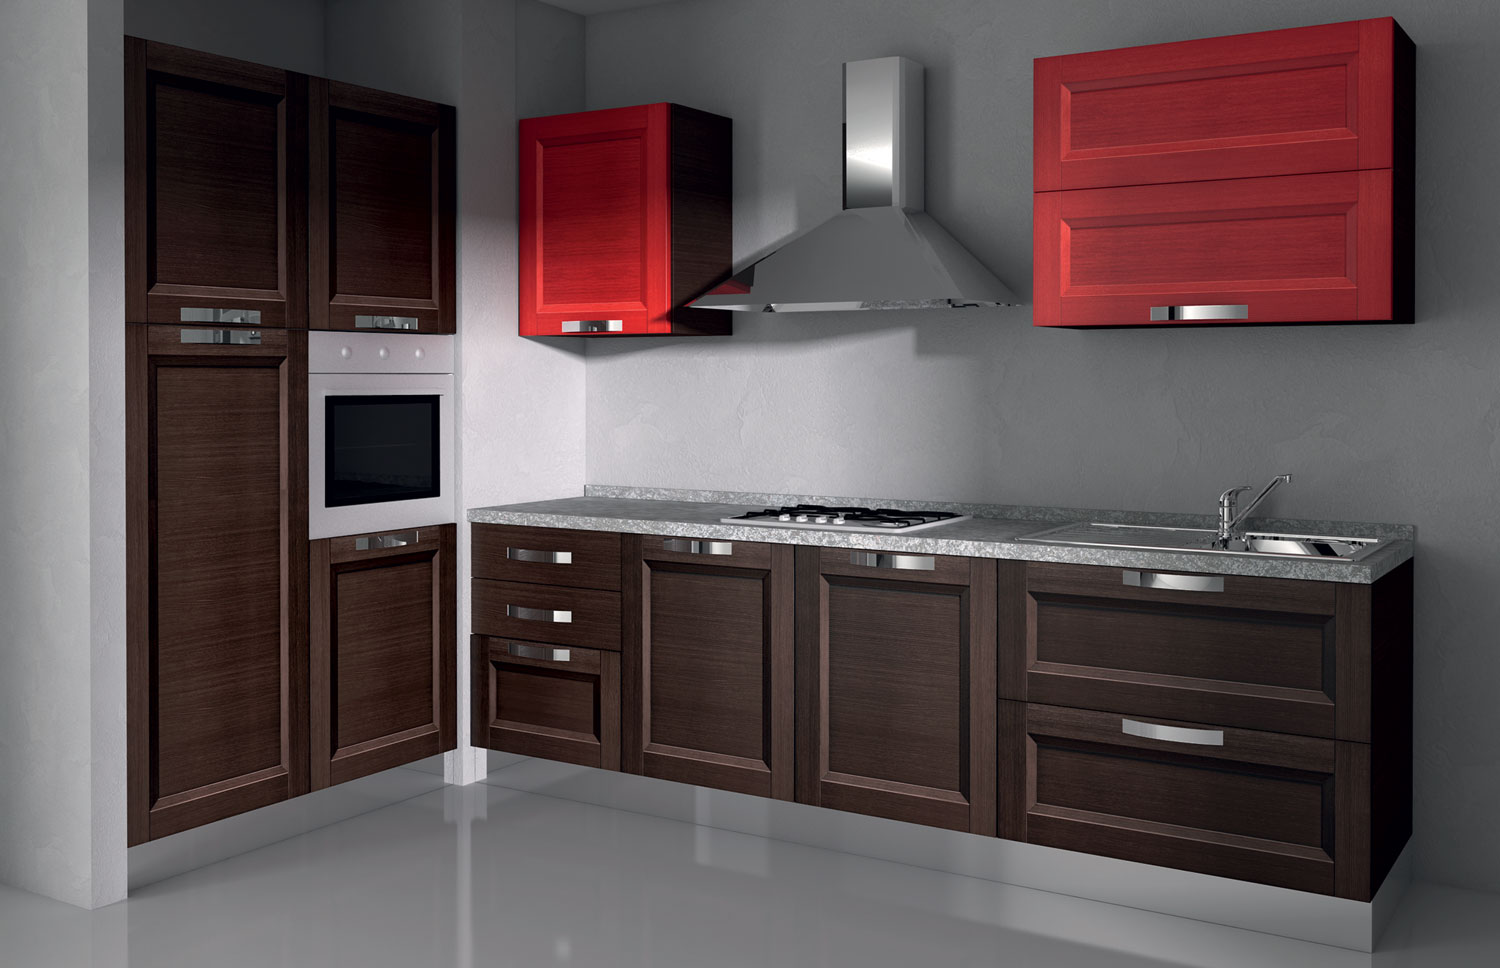 Kitchens Offers